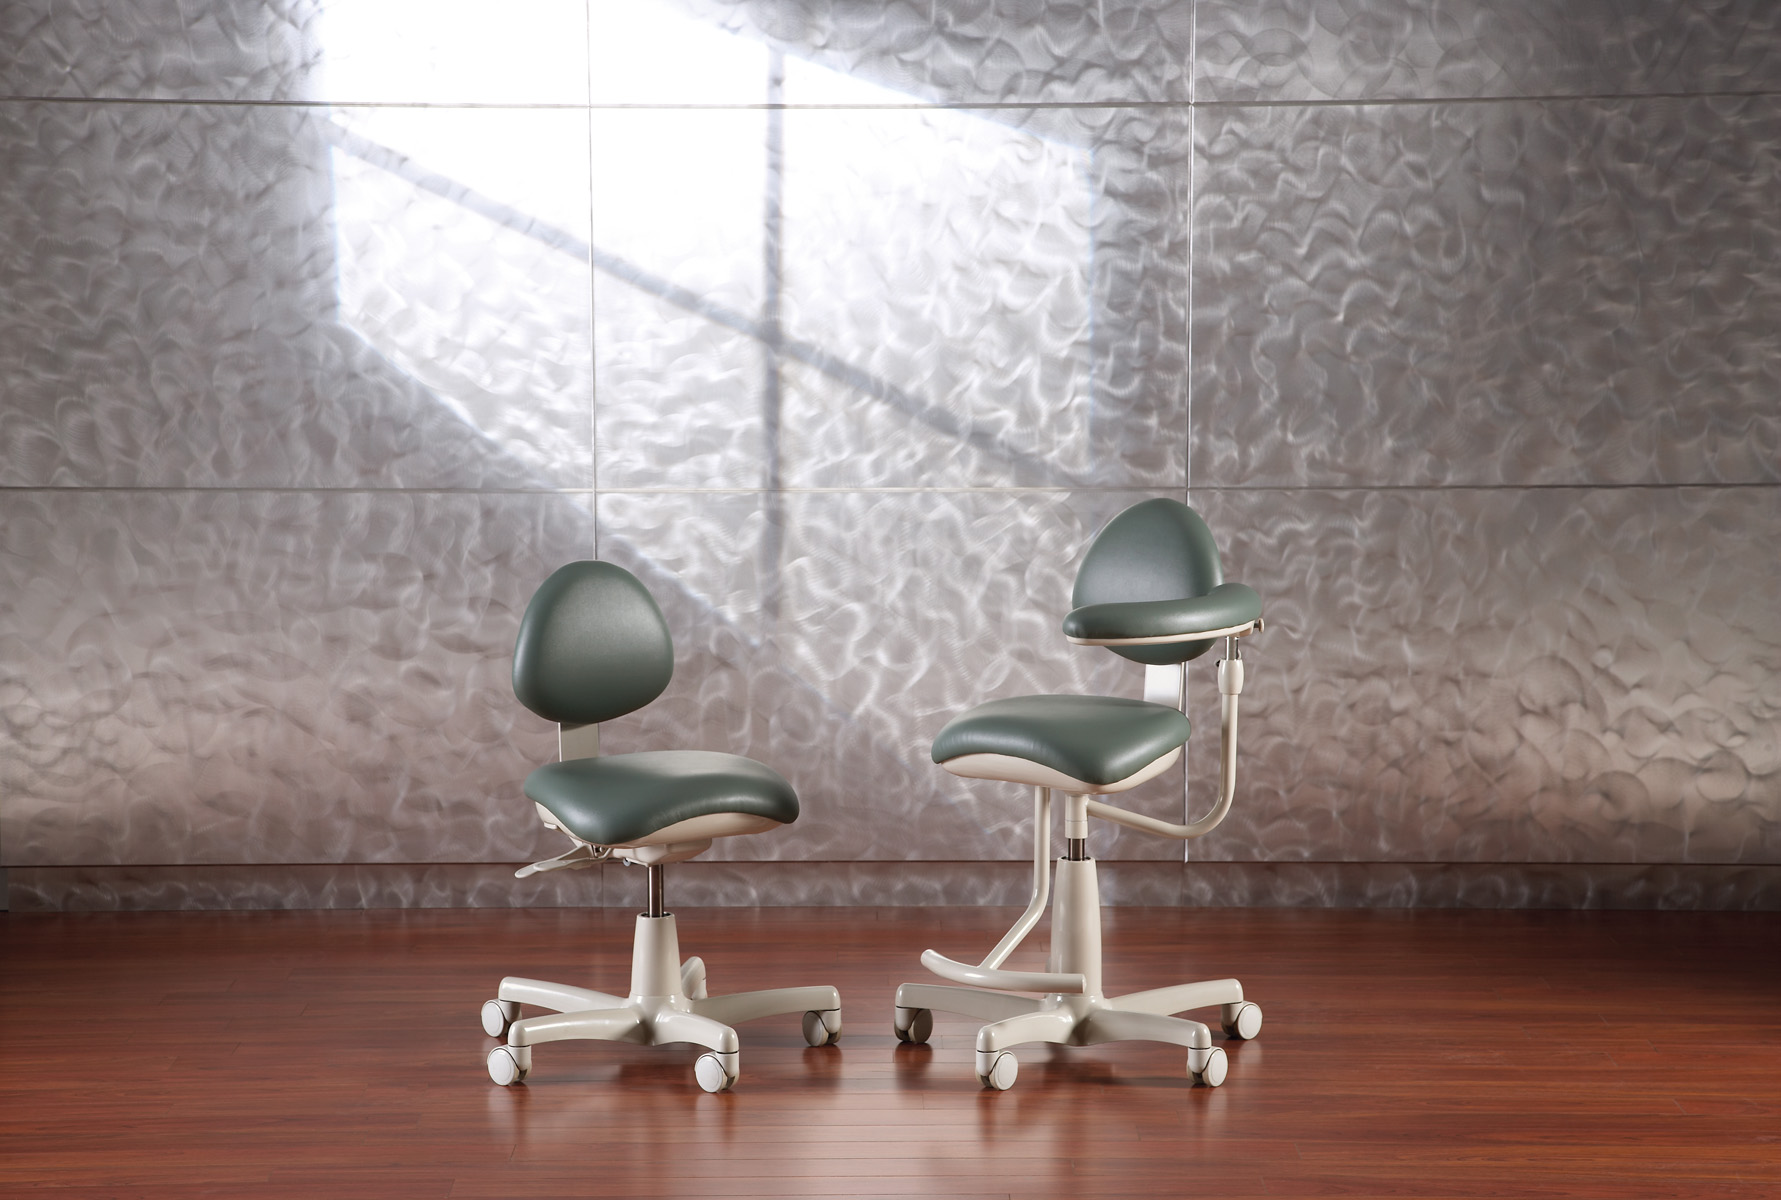 midmark dental chairs first person shooter gaming chair dentists stool